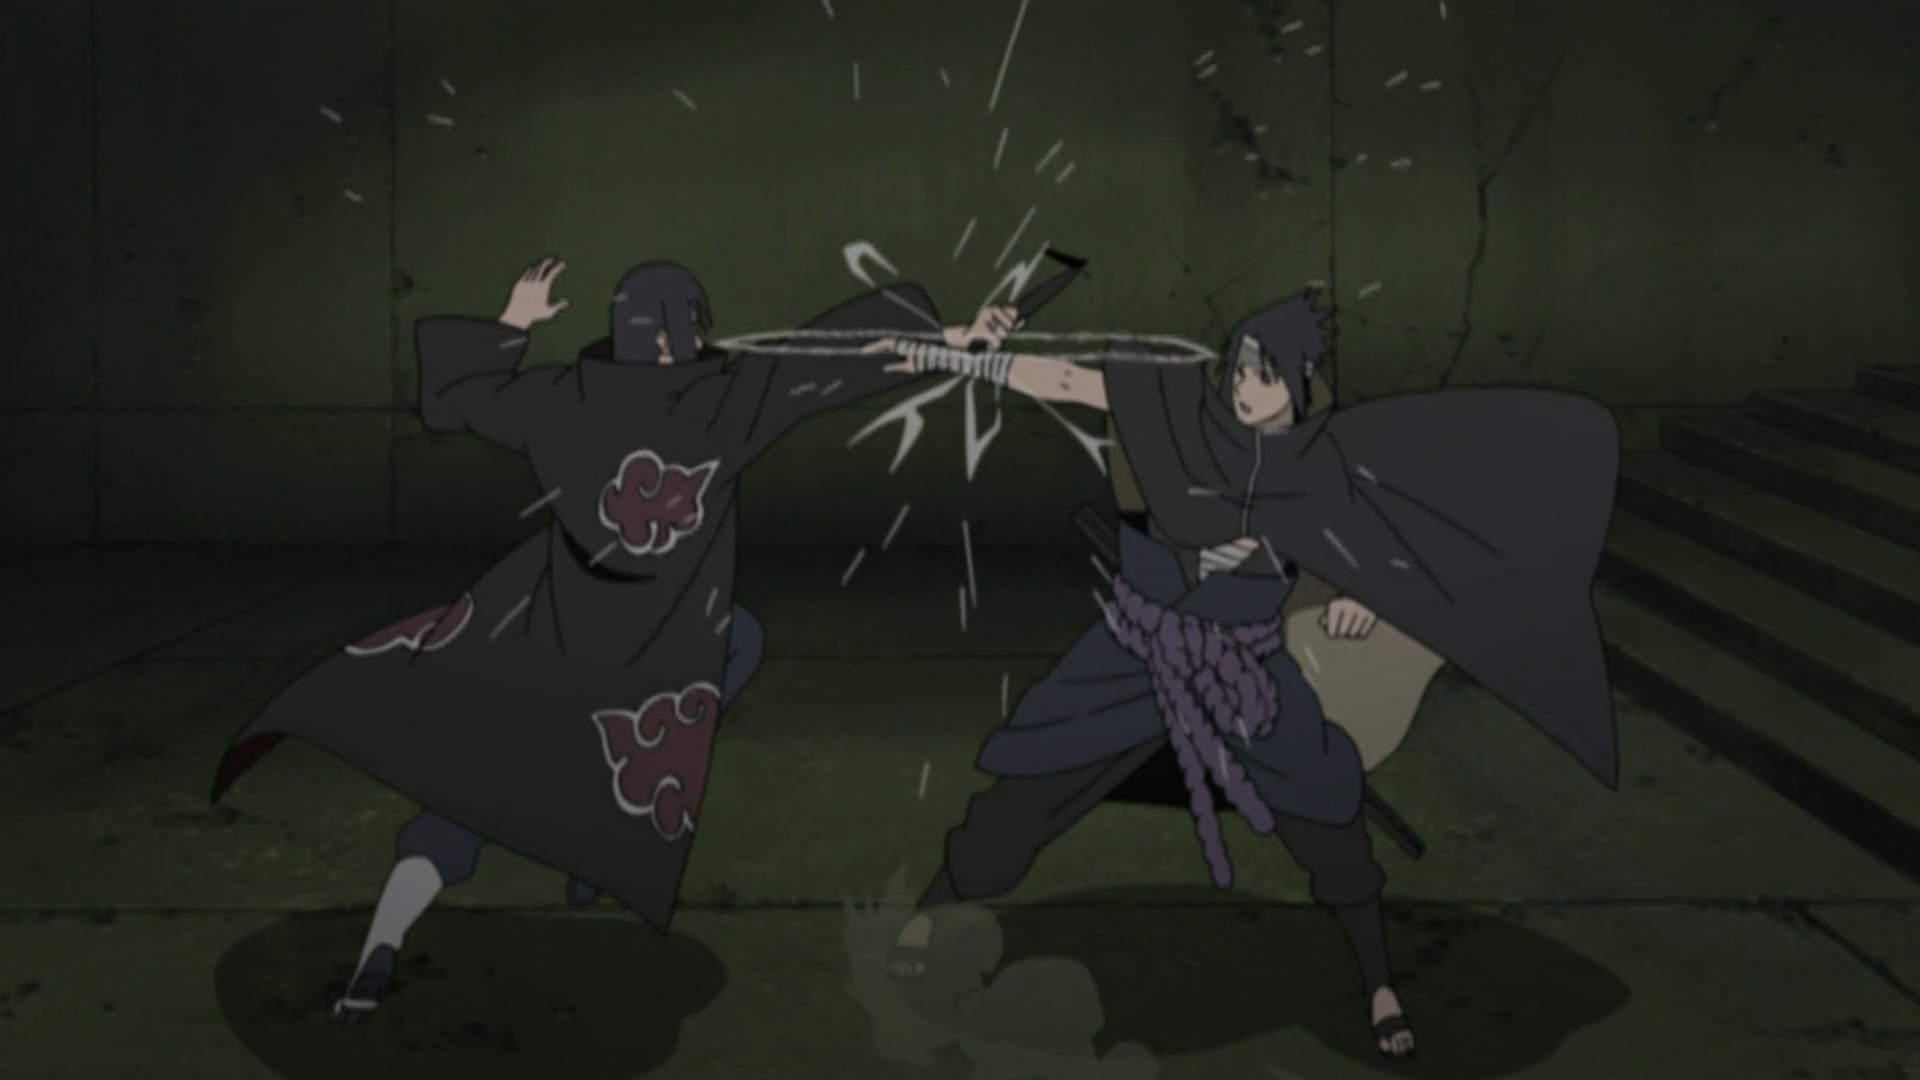 image sasuke vs itachi png narutopedia fandom powered by wikia